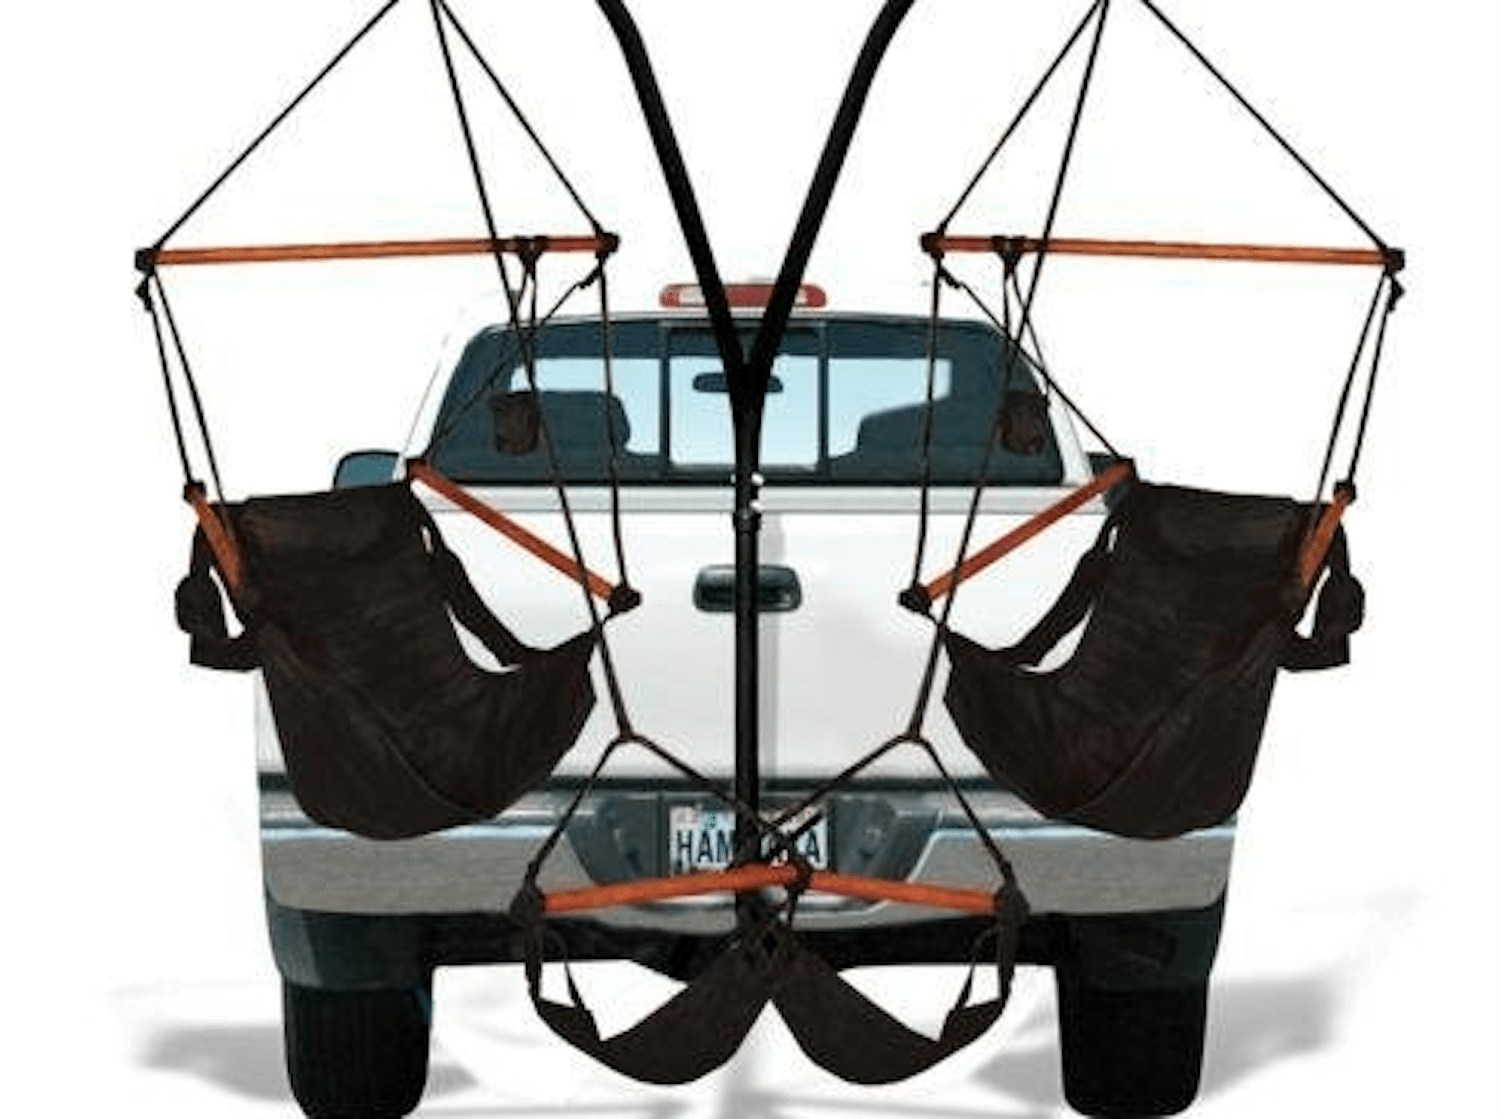 Trailer Hitch Allows You To Attach Hammocks To Truck